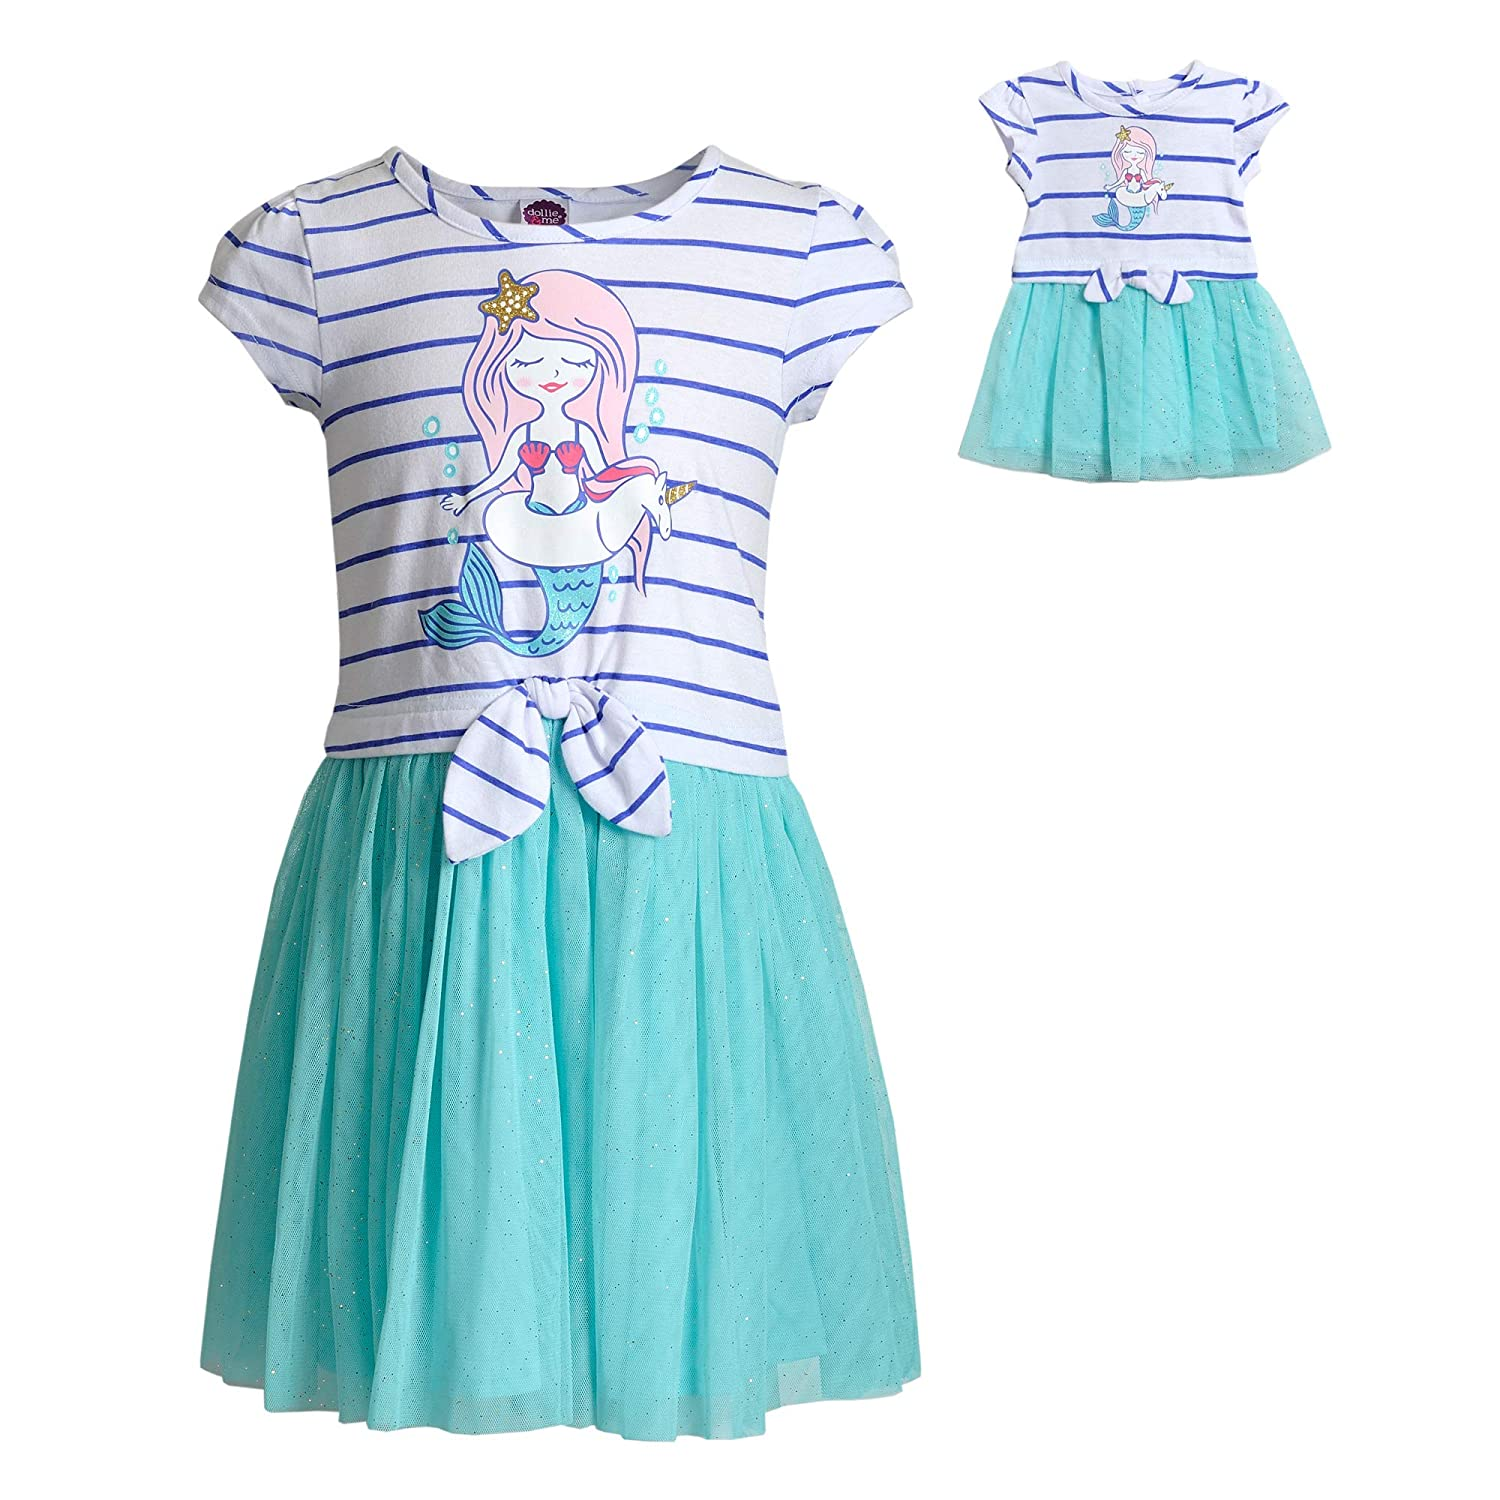 Dollie & Me Mermaid Dress Set with Matching Outfit-Girl & 7 Inch